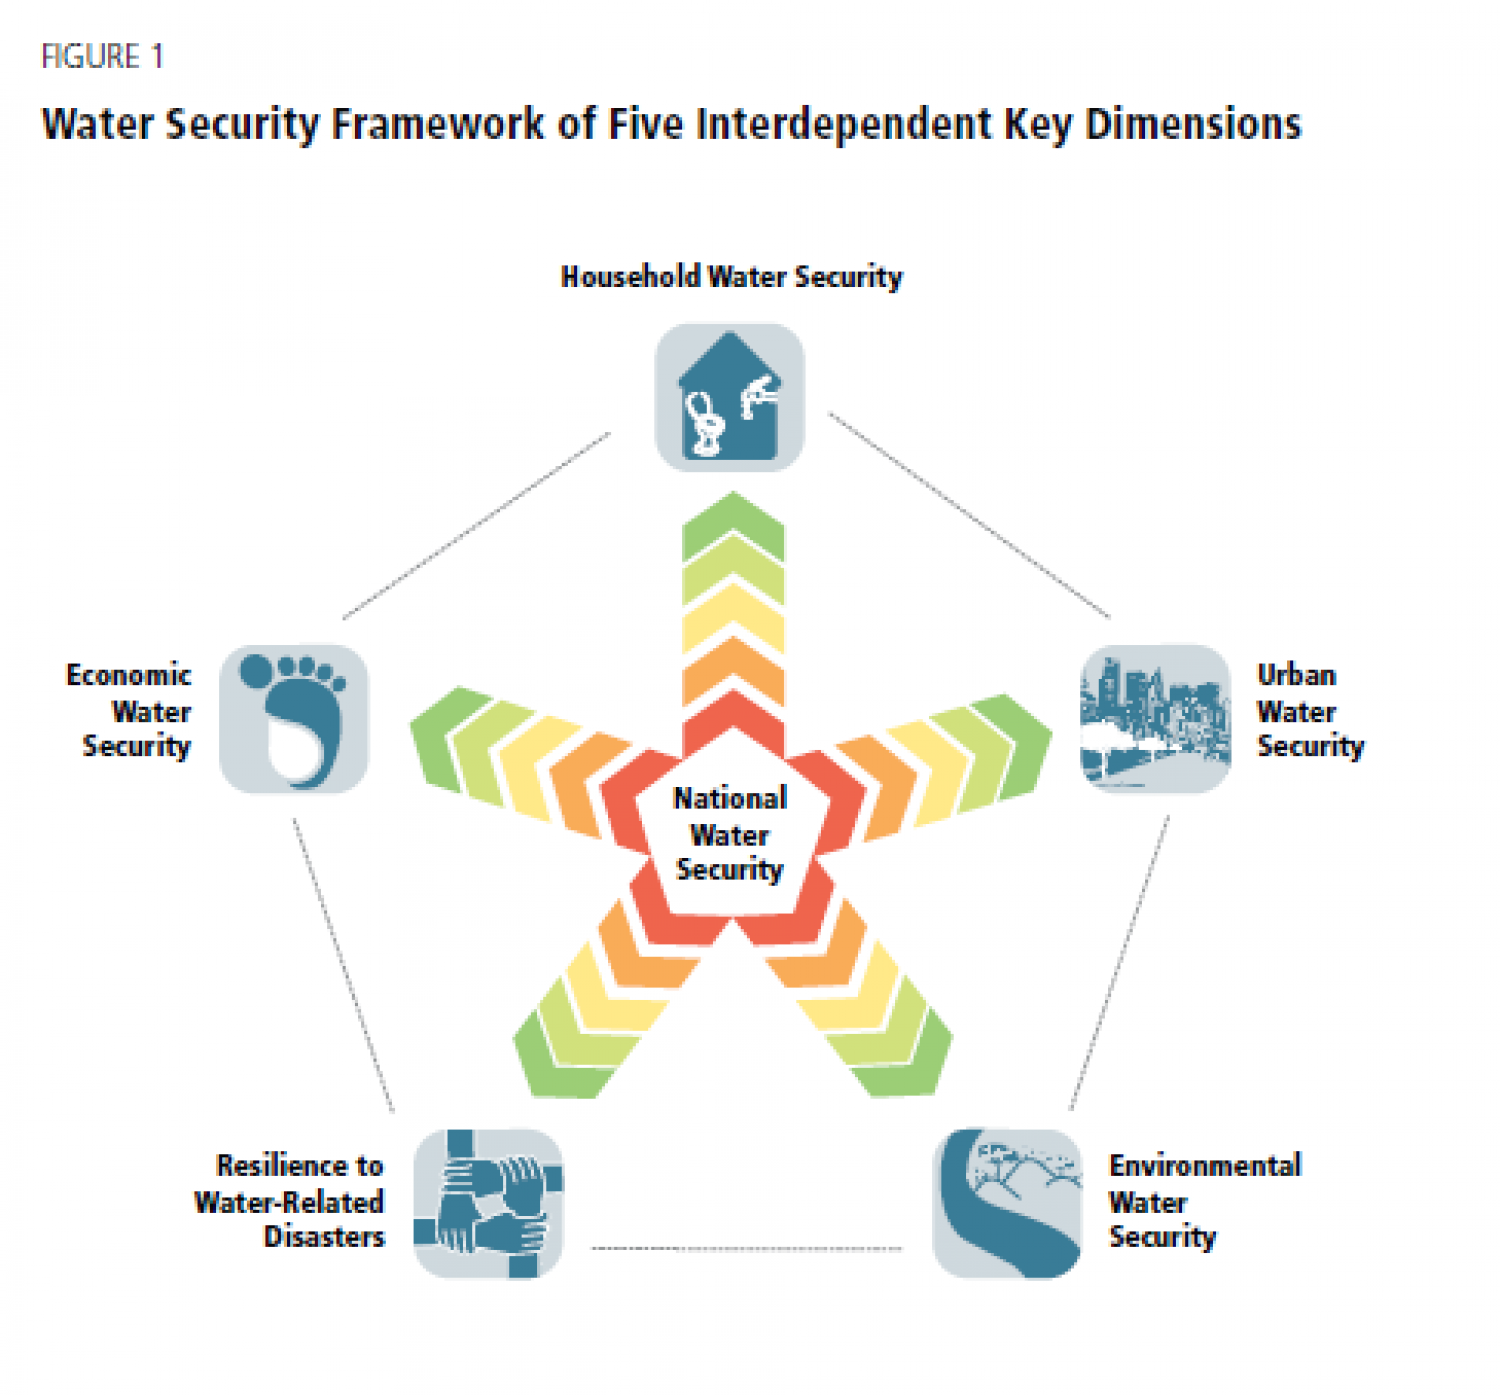 Water Security Framework of Five Interdependent Key Dimensions Infographic